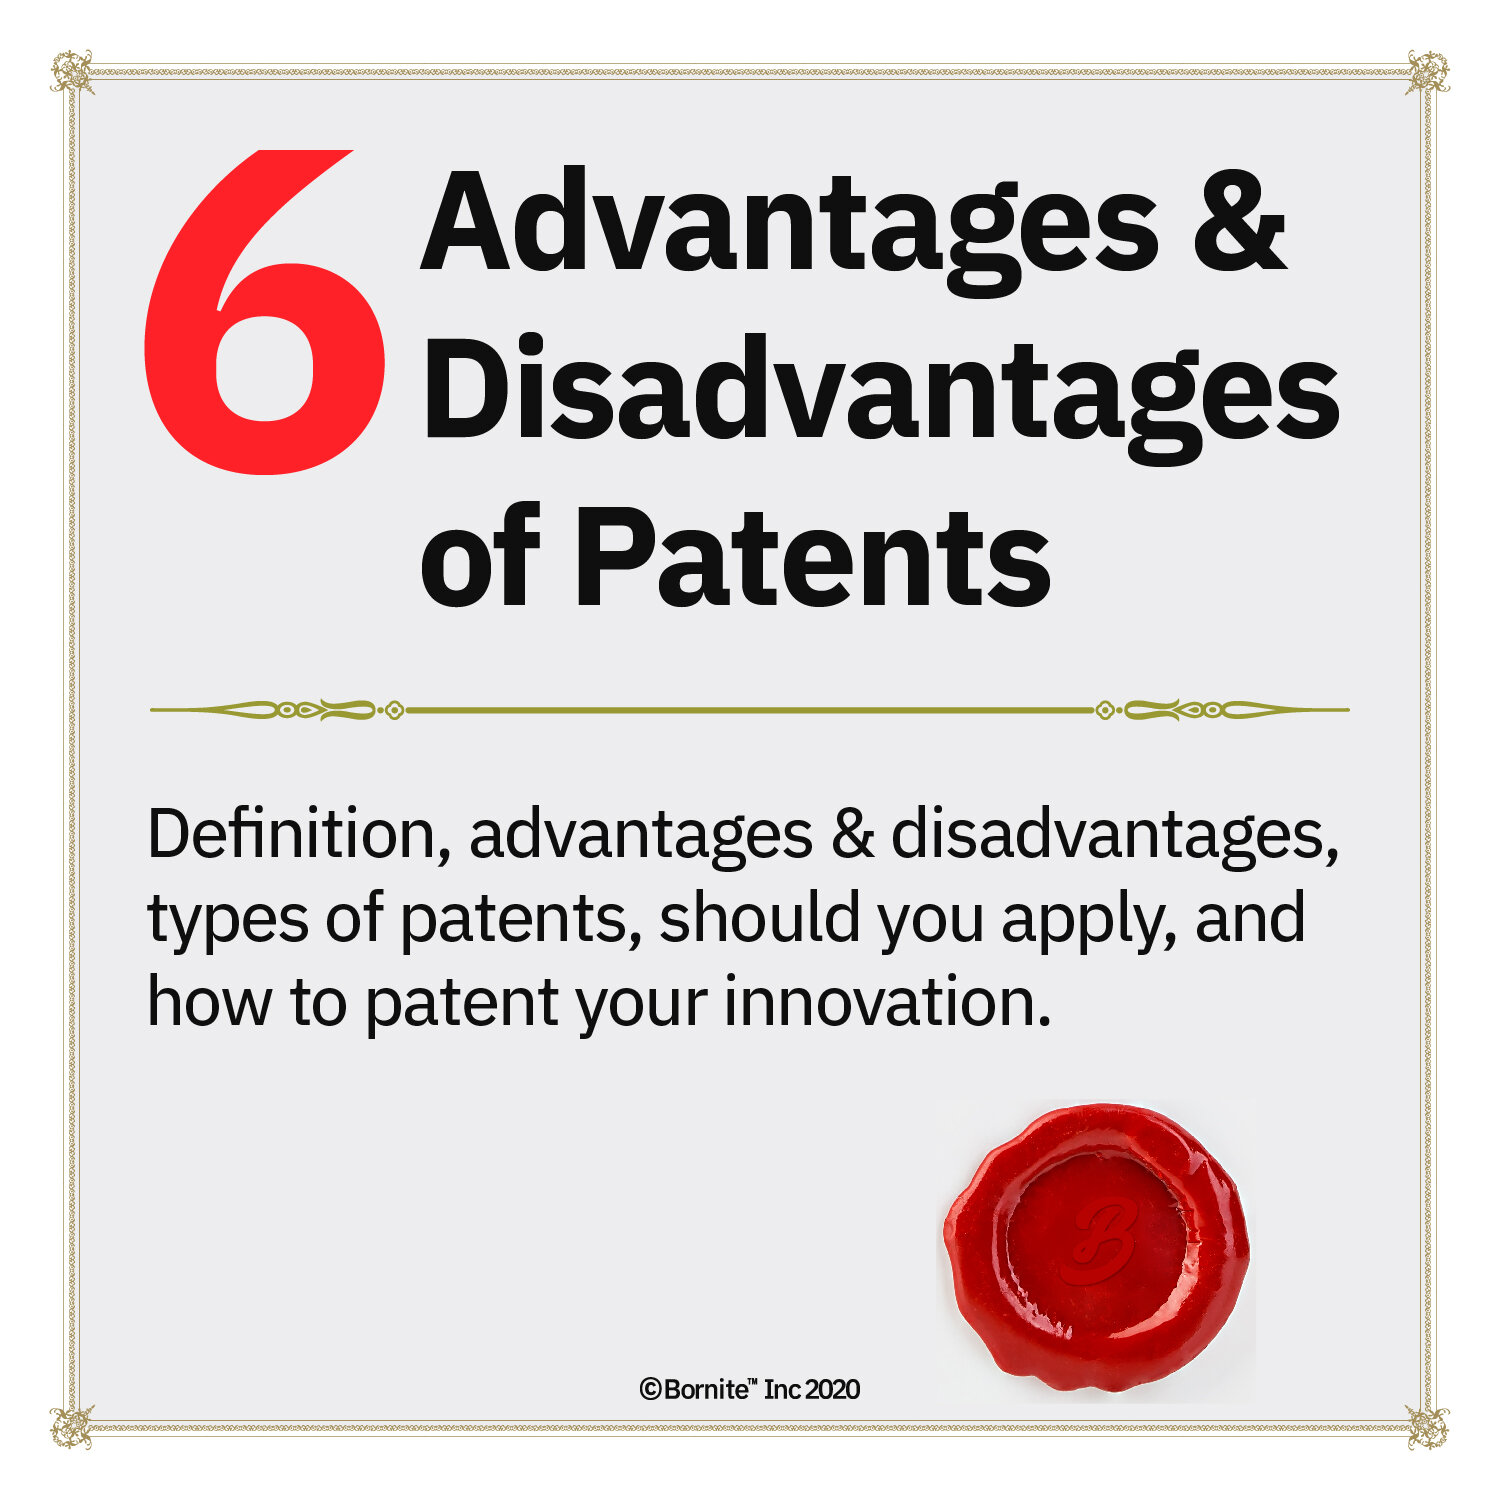 6 Advantages and Disadvantages of Patents